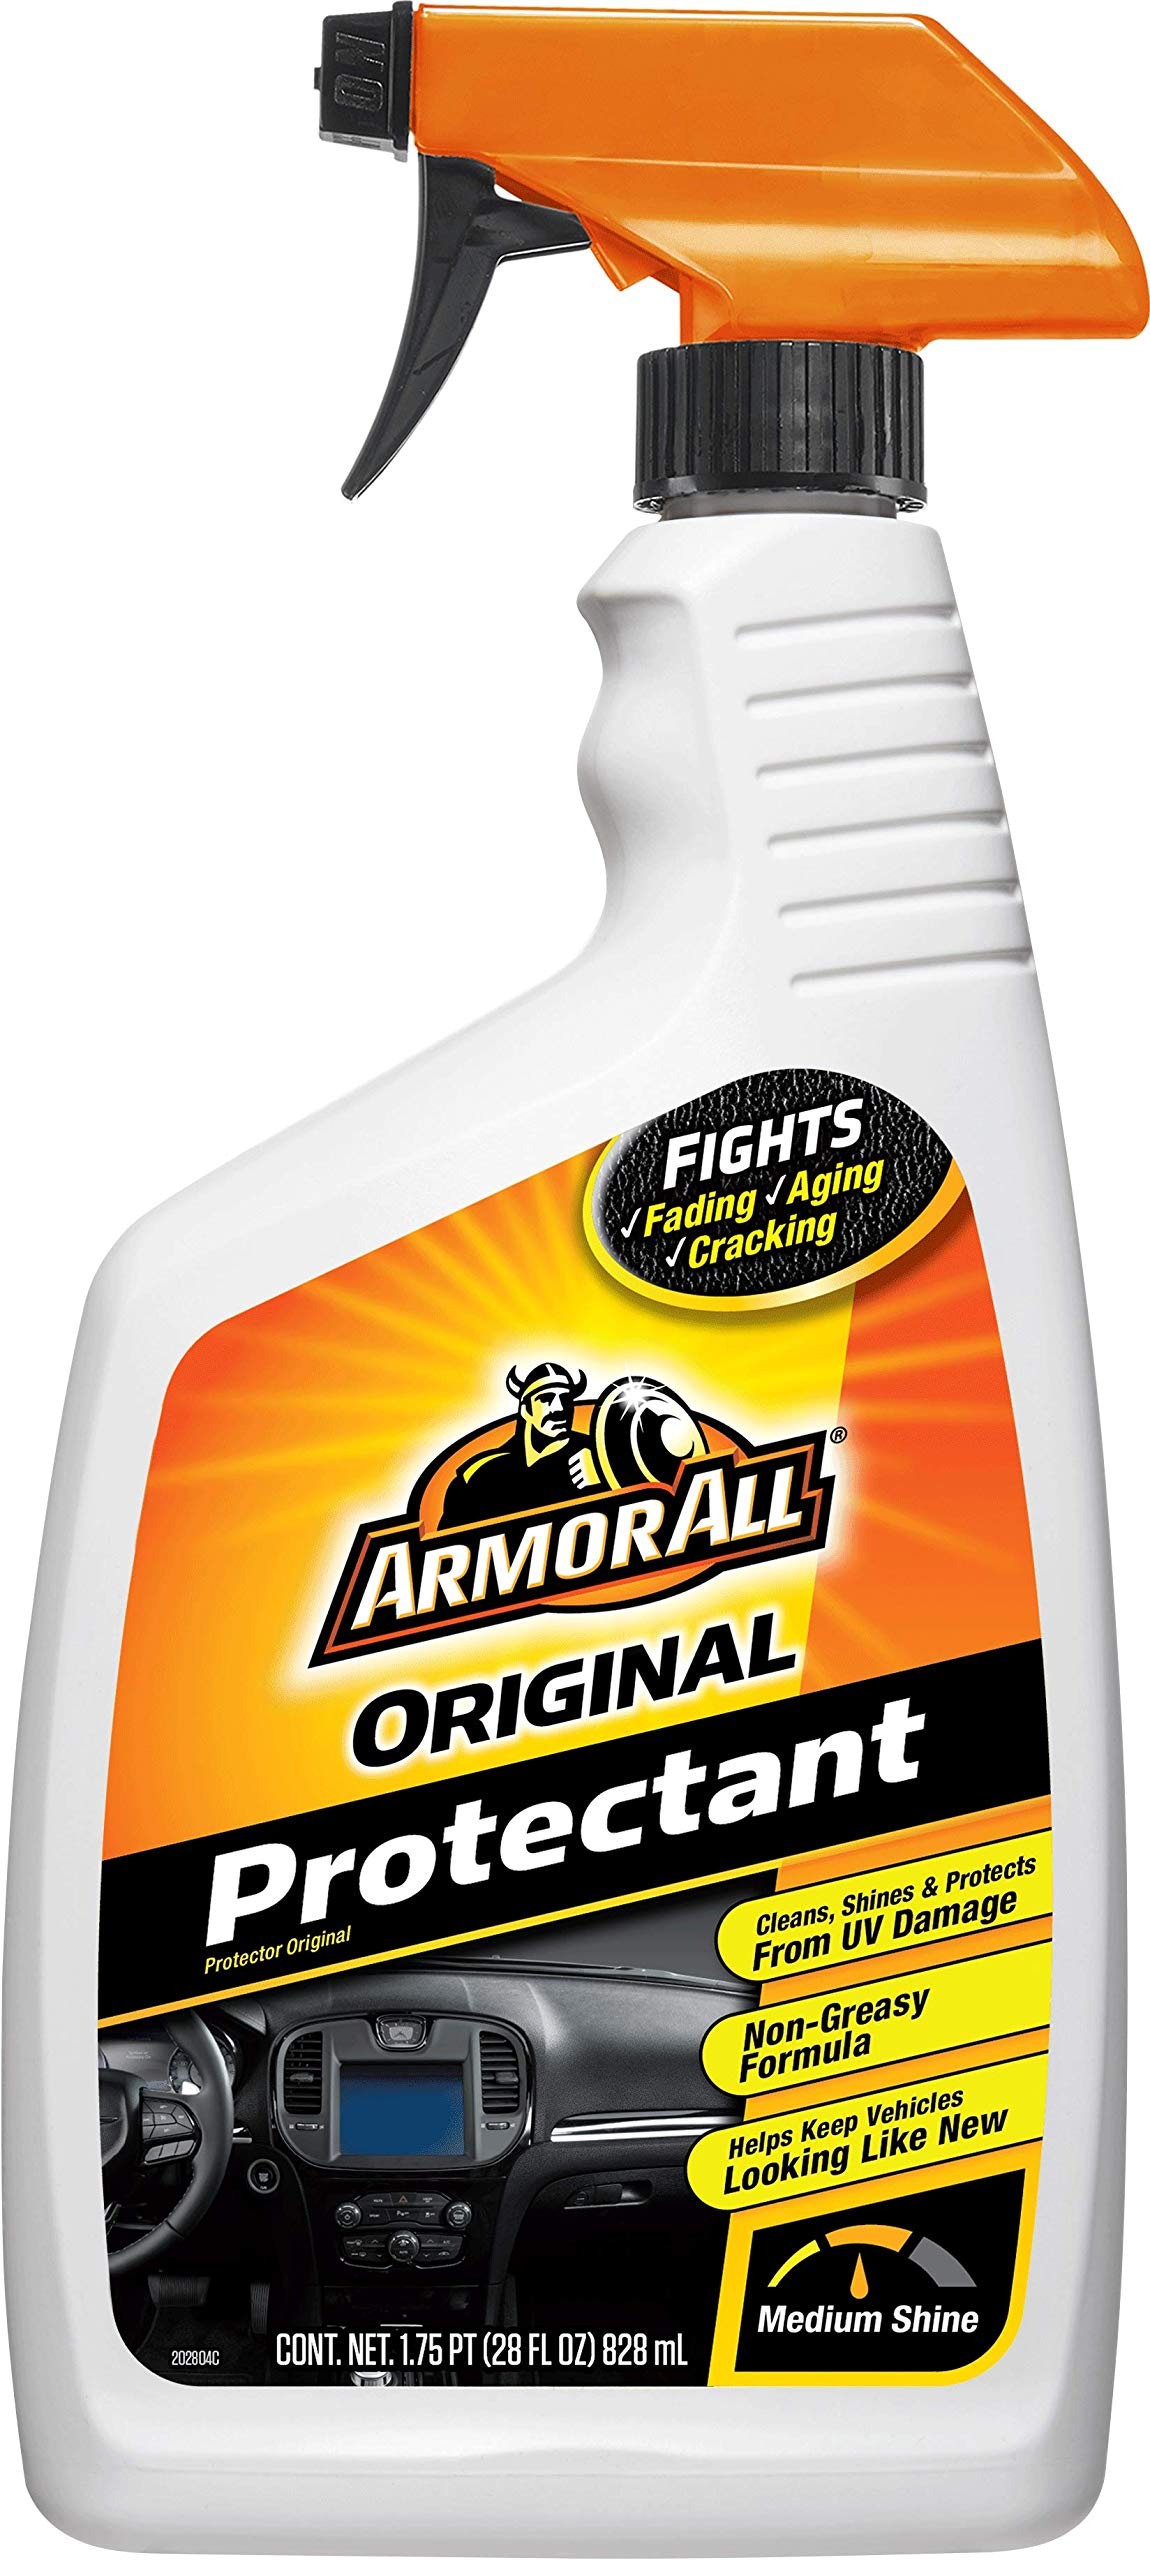 Armor All Original Protectant  (28 fl. oz.) (Case of 6)